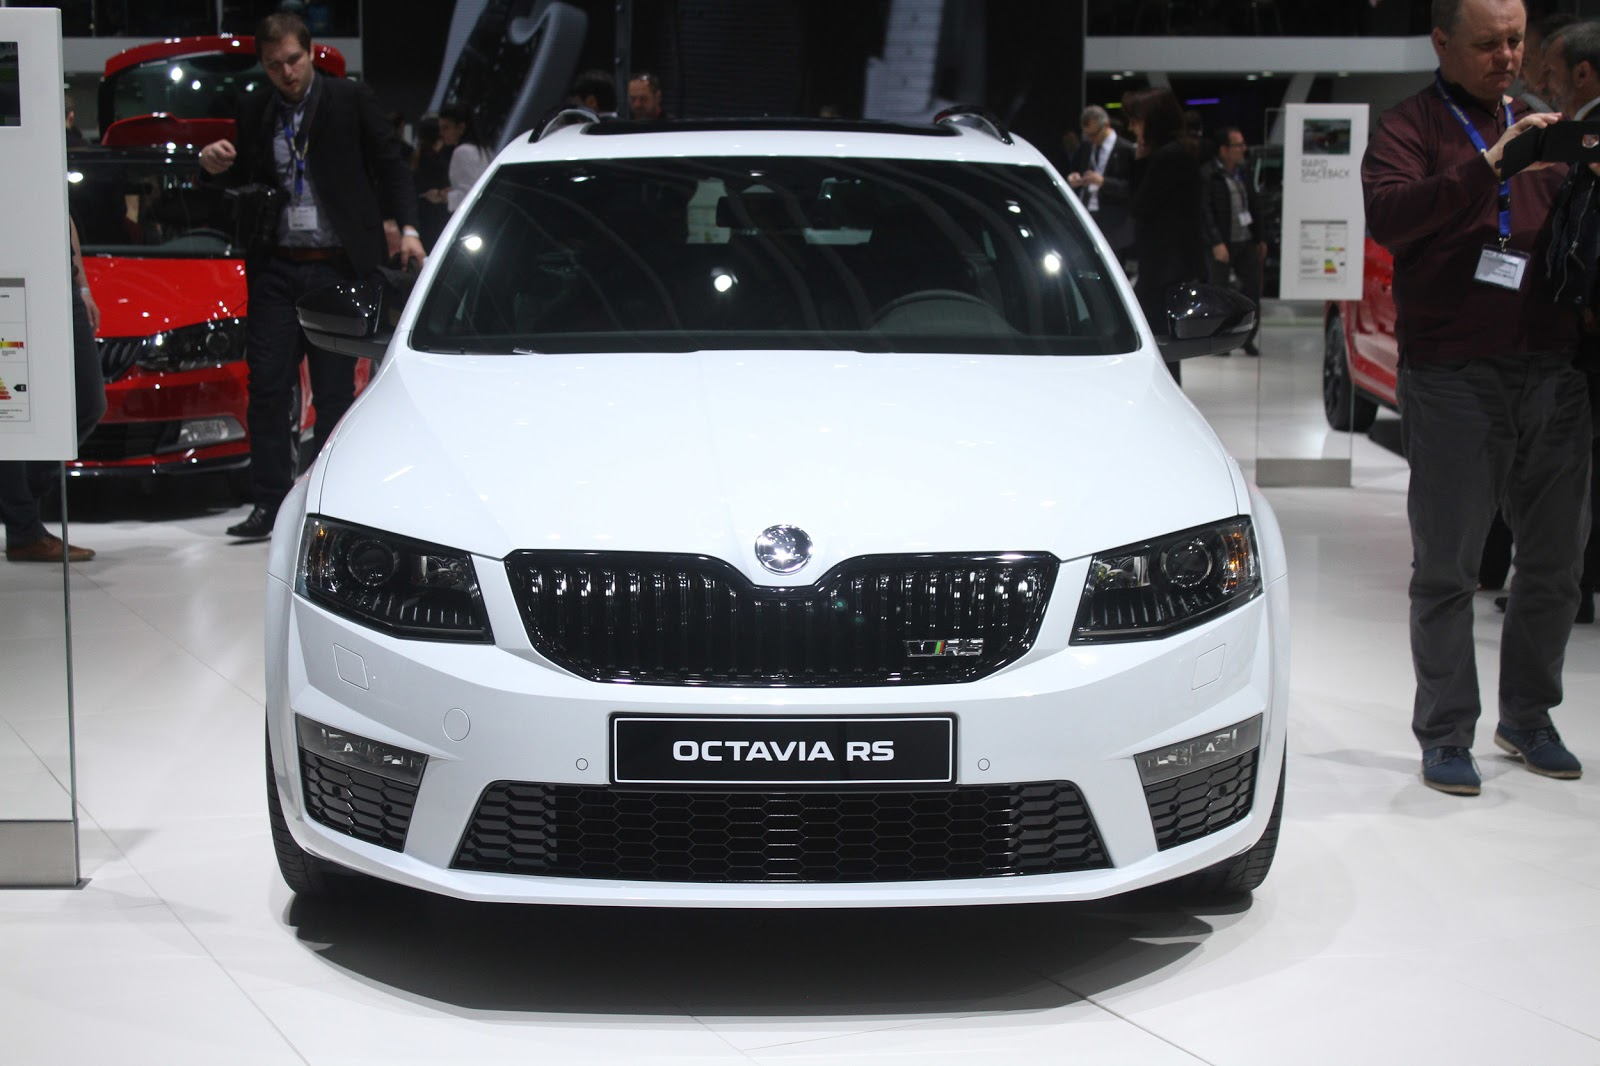 2015 skoda octavia rs 230 car photos catalog 2018. Black Bedroom Furniture Sets. Home Design Ideas